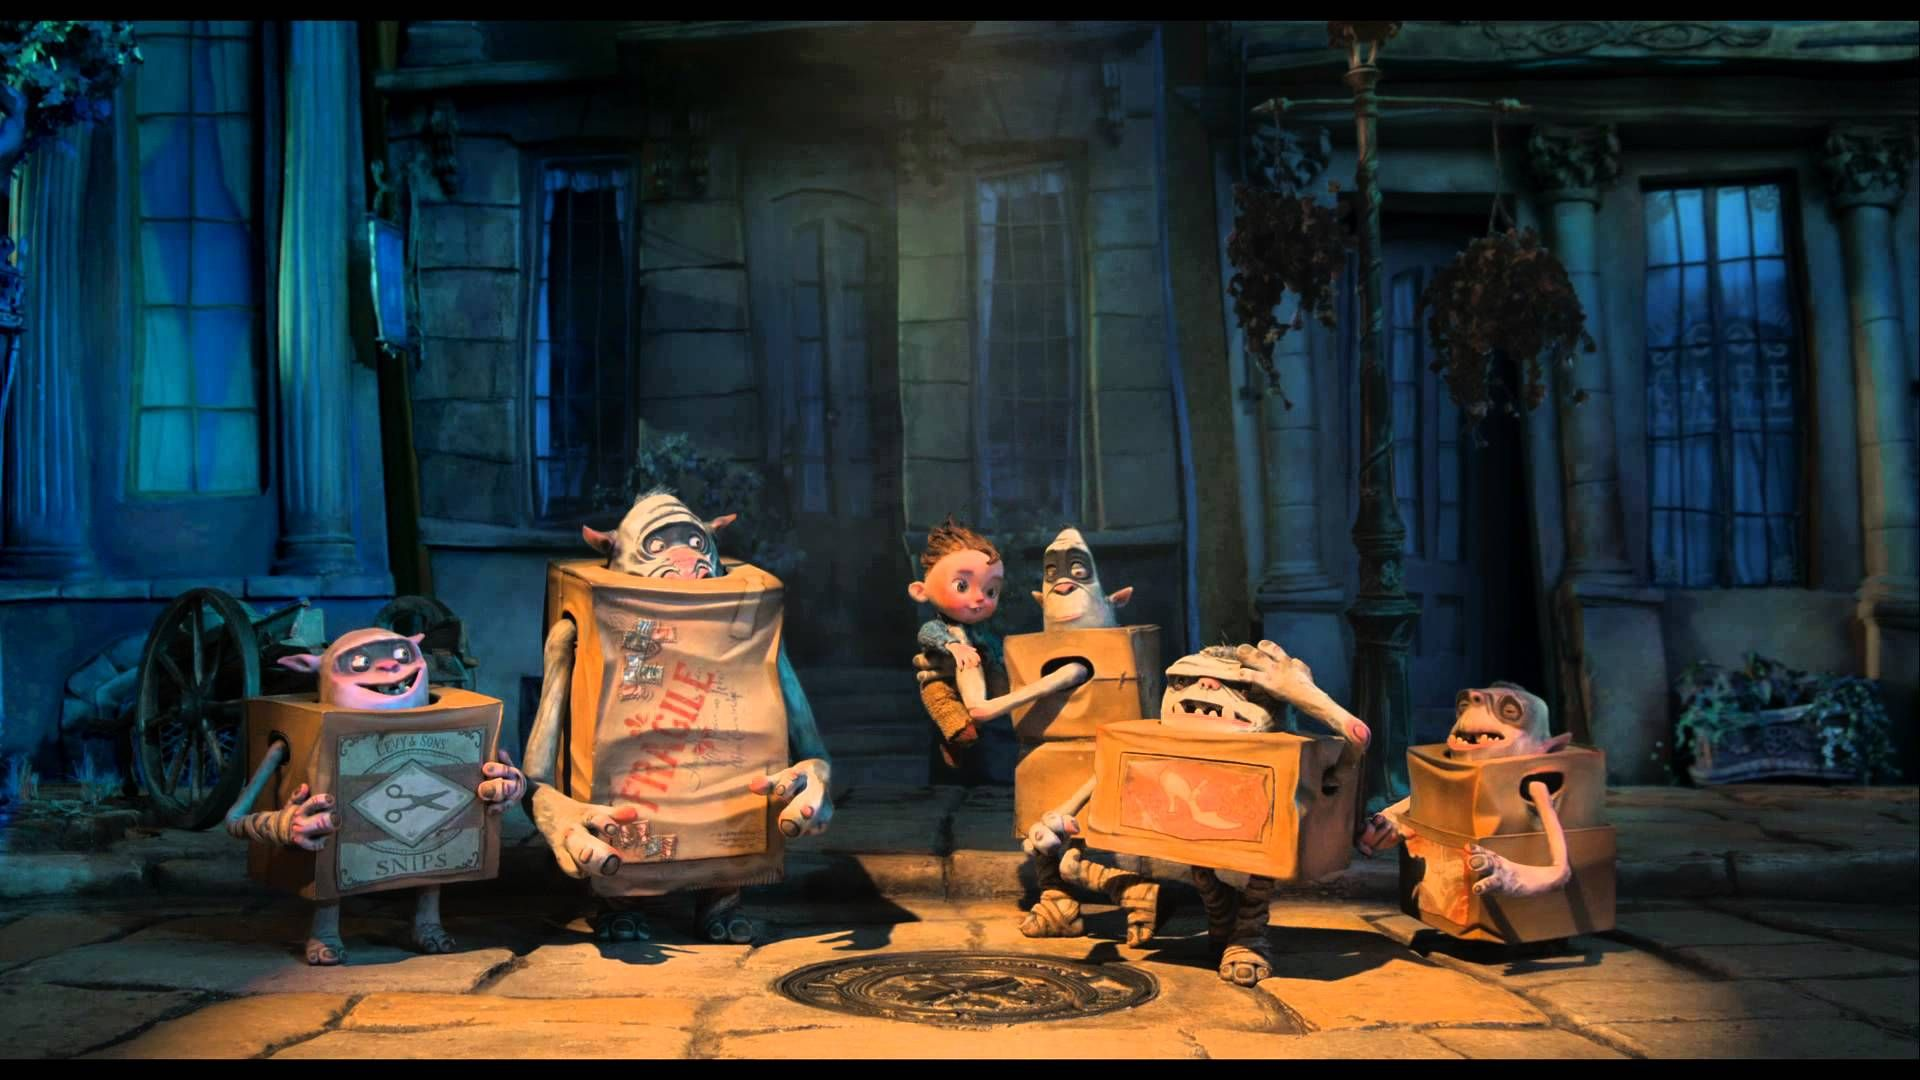 The Boxtrolls Official Teaser Trailer 1 Hd Theboxtrolls In Theaters 9 26 14 Www Theboxtrolls Com Streaming Movies Free Movies Movies To Watch Online